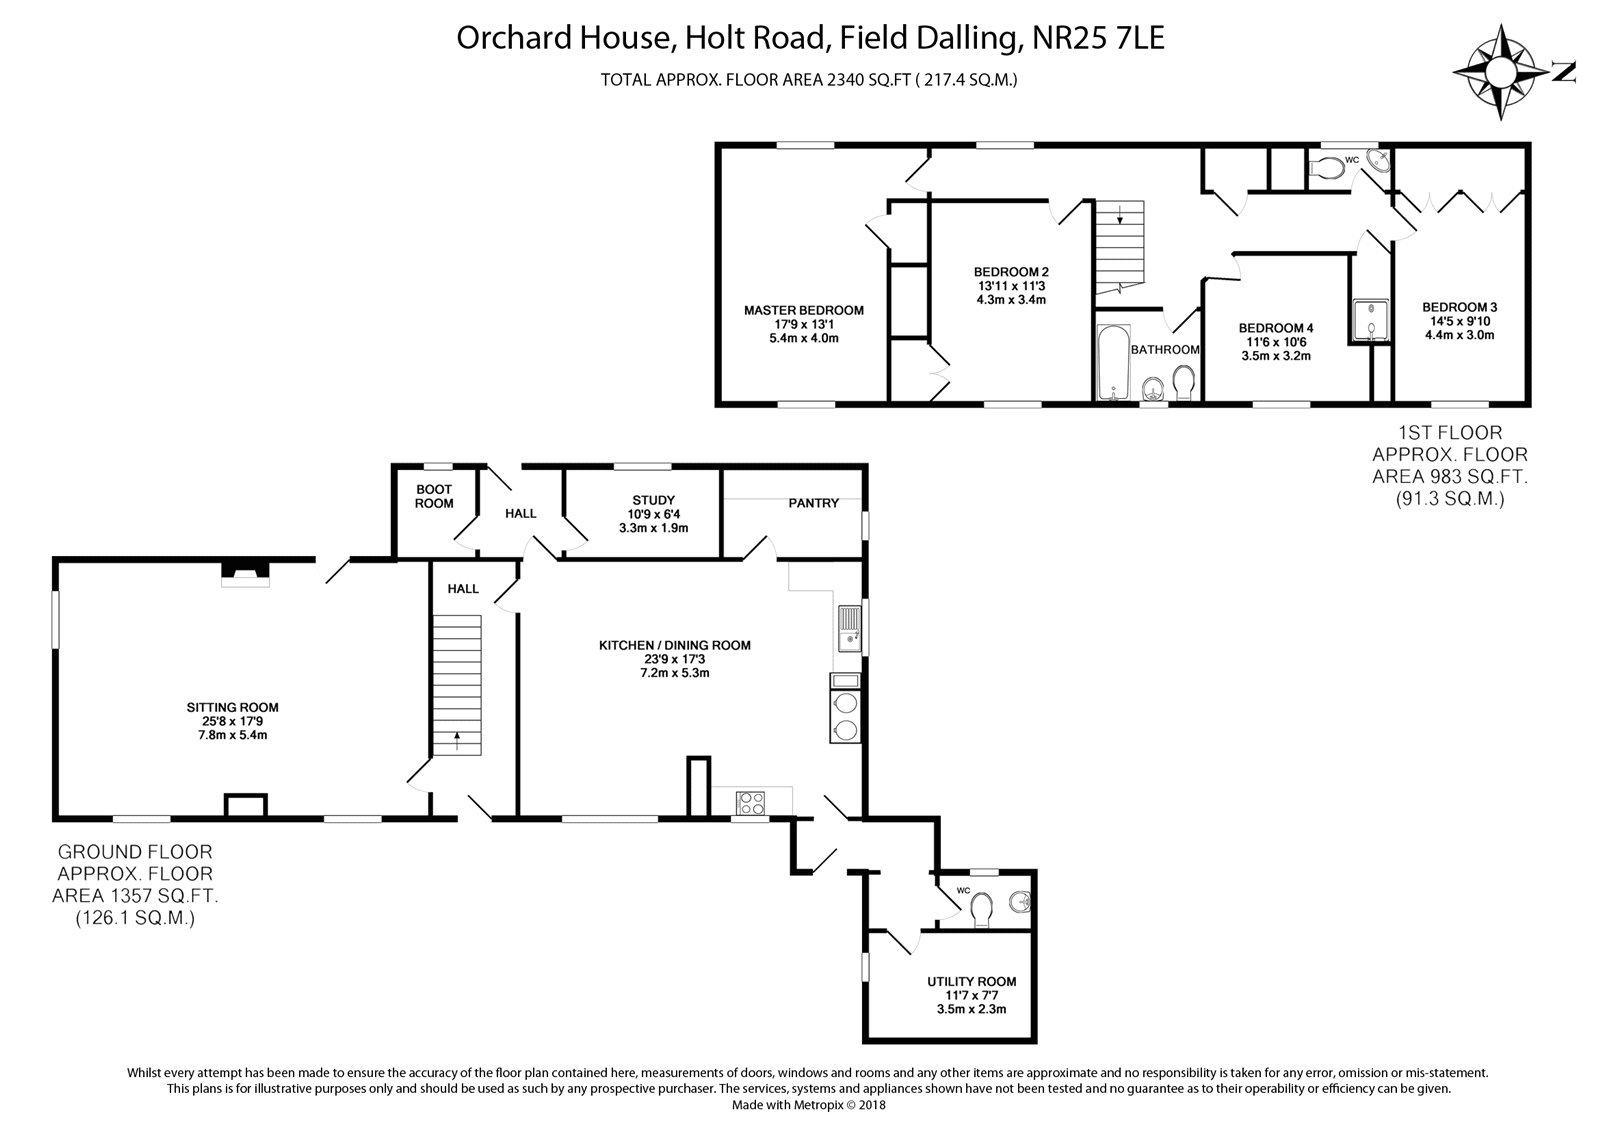 Jackson-Stops | 4 bedroom property for sale in Holt Road, Field